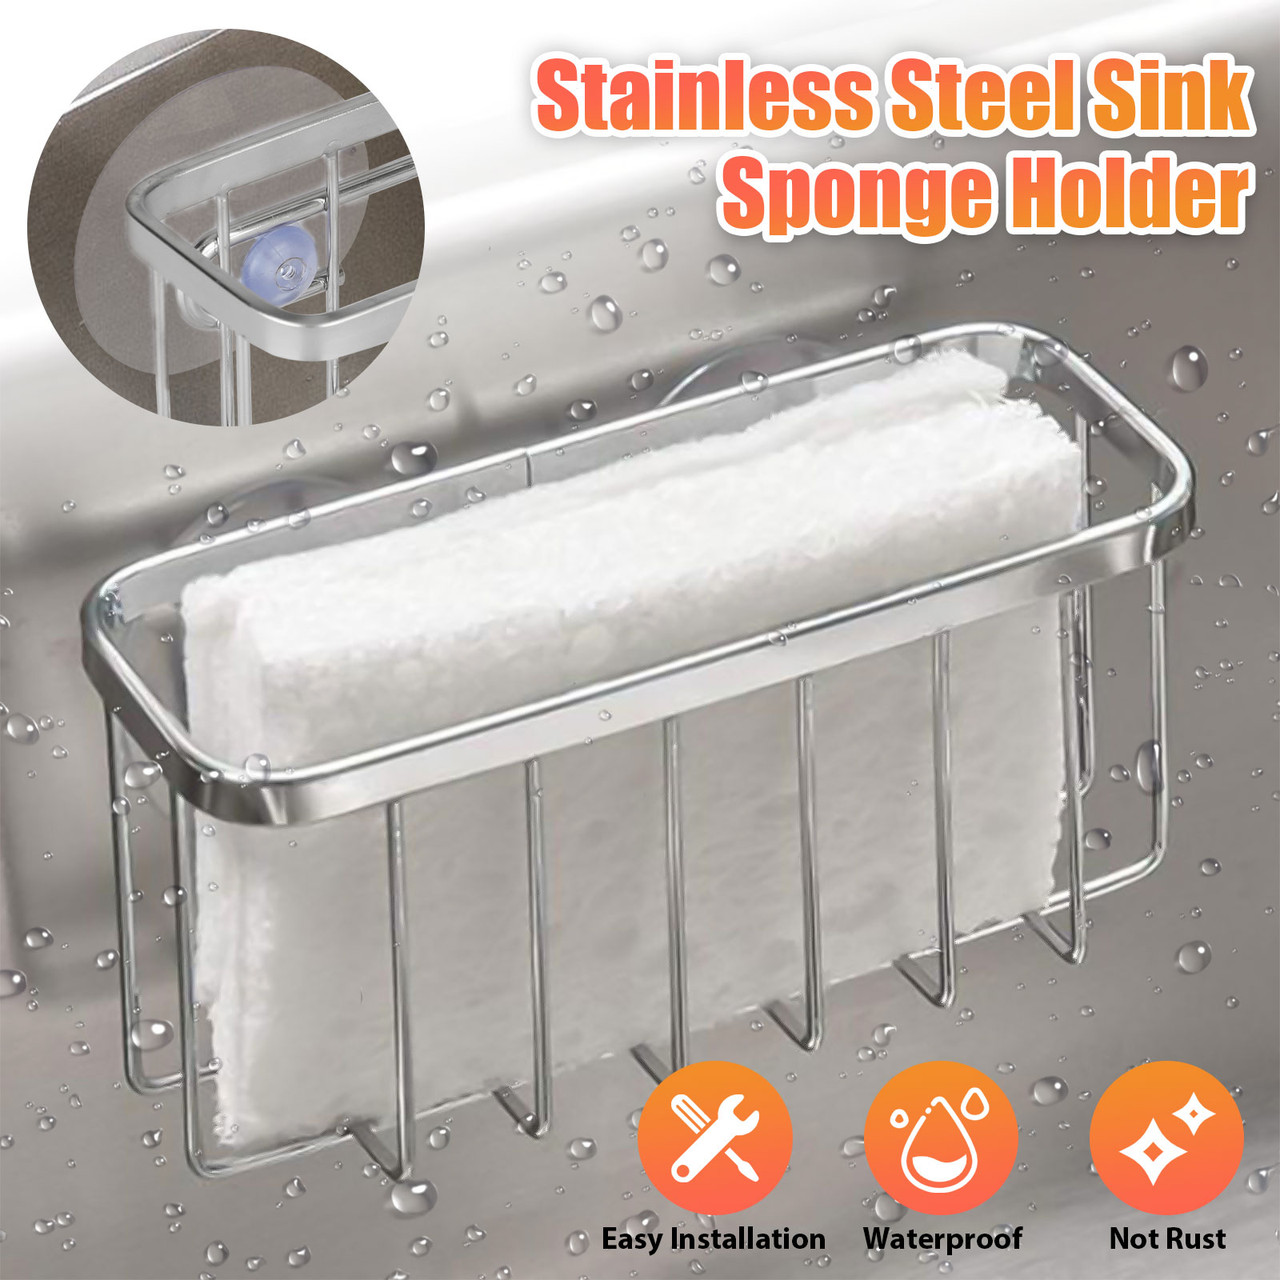 kitchen sink sponge brush holder stainless steel rustproof dish organizer basket for holding sponges soap in kitchen and bathroom sink caddy with